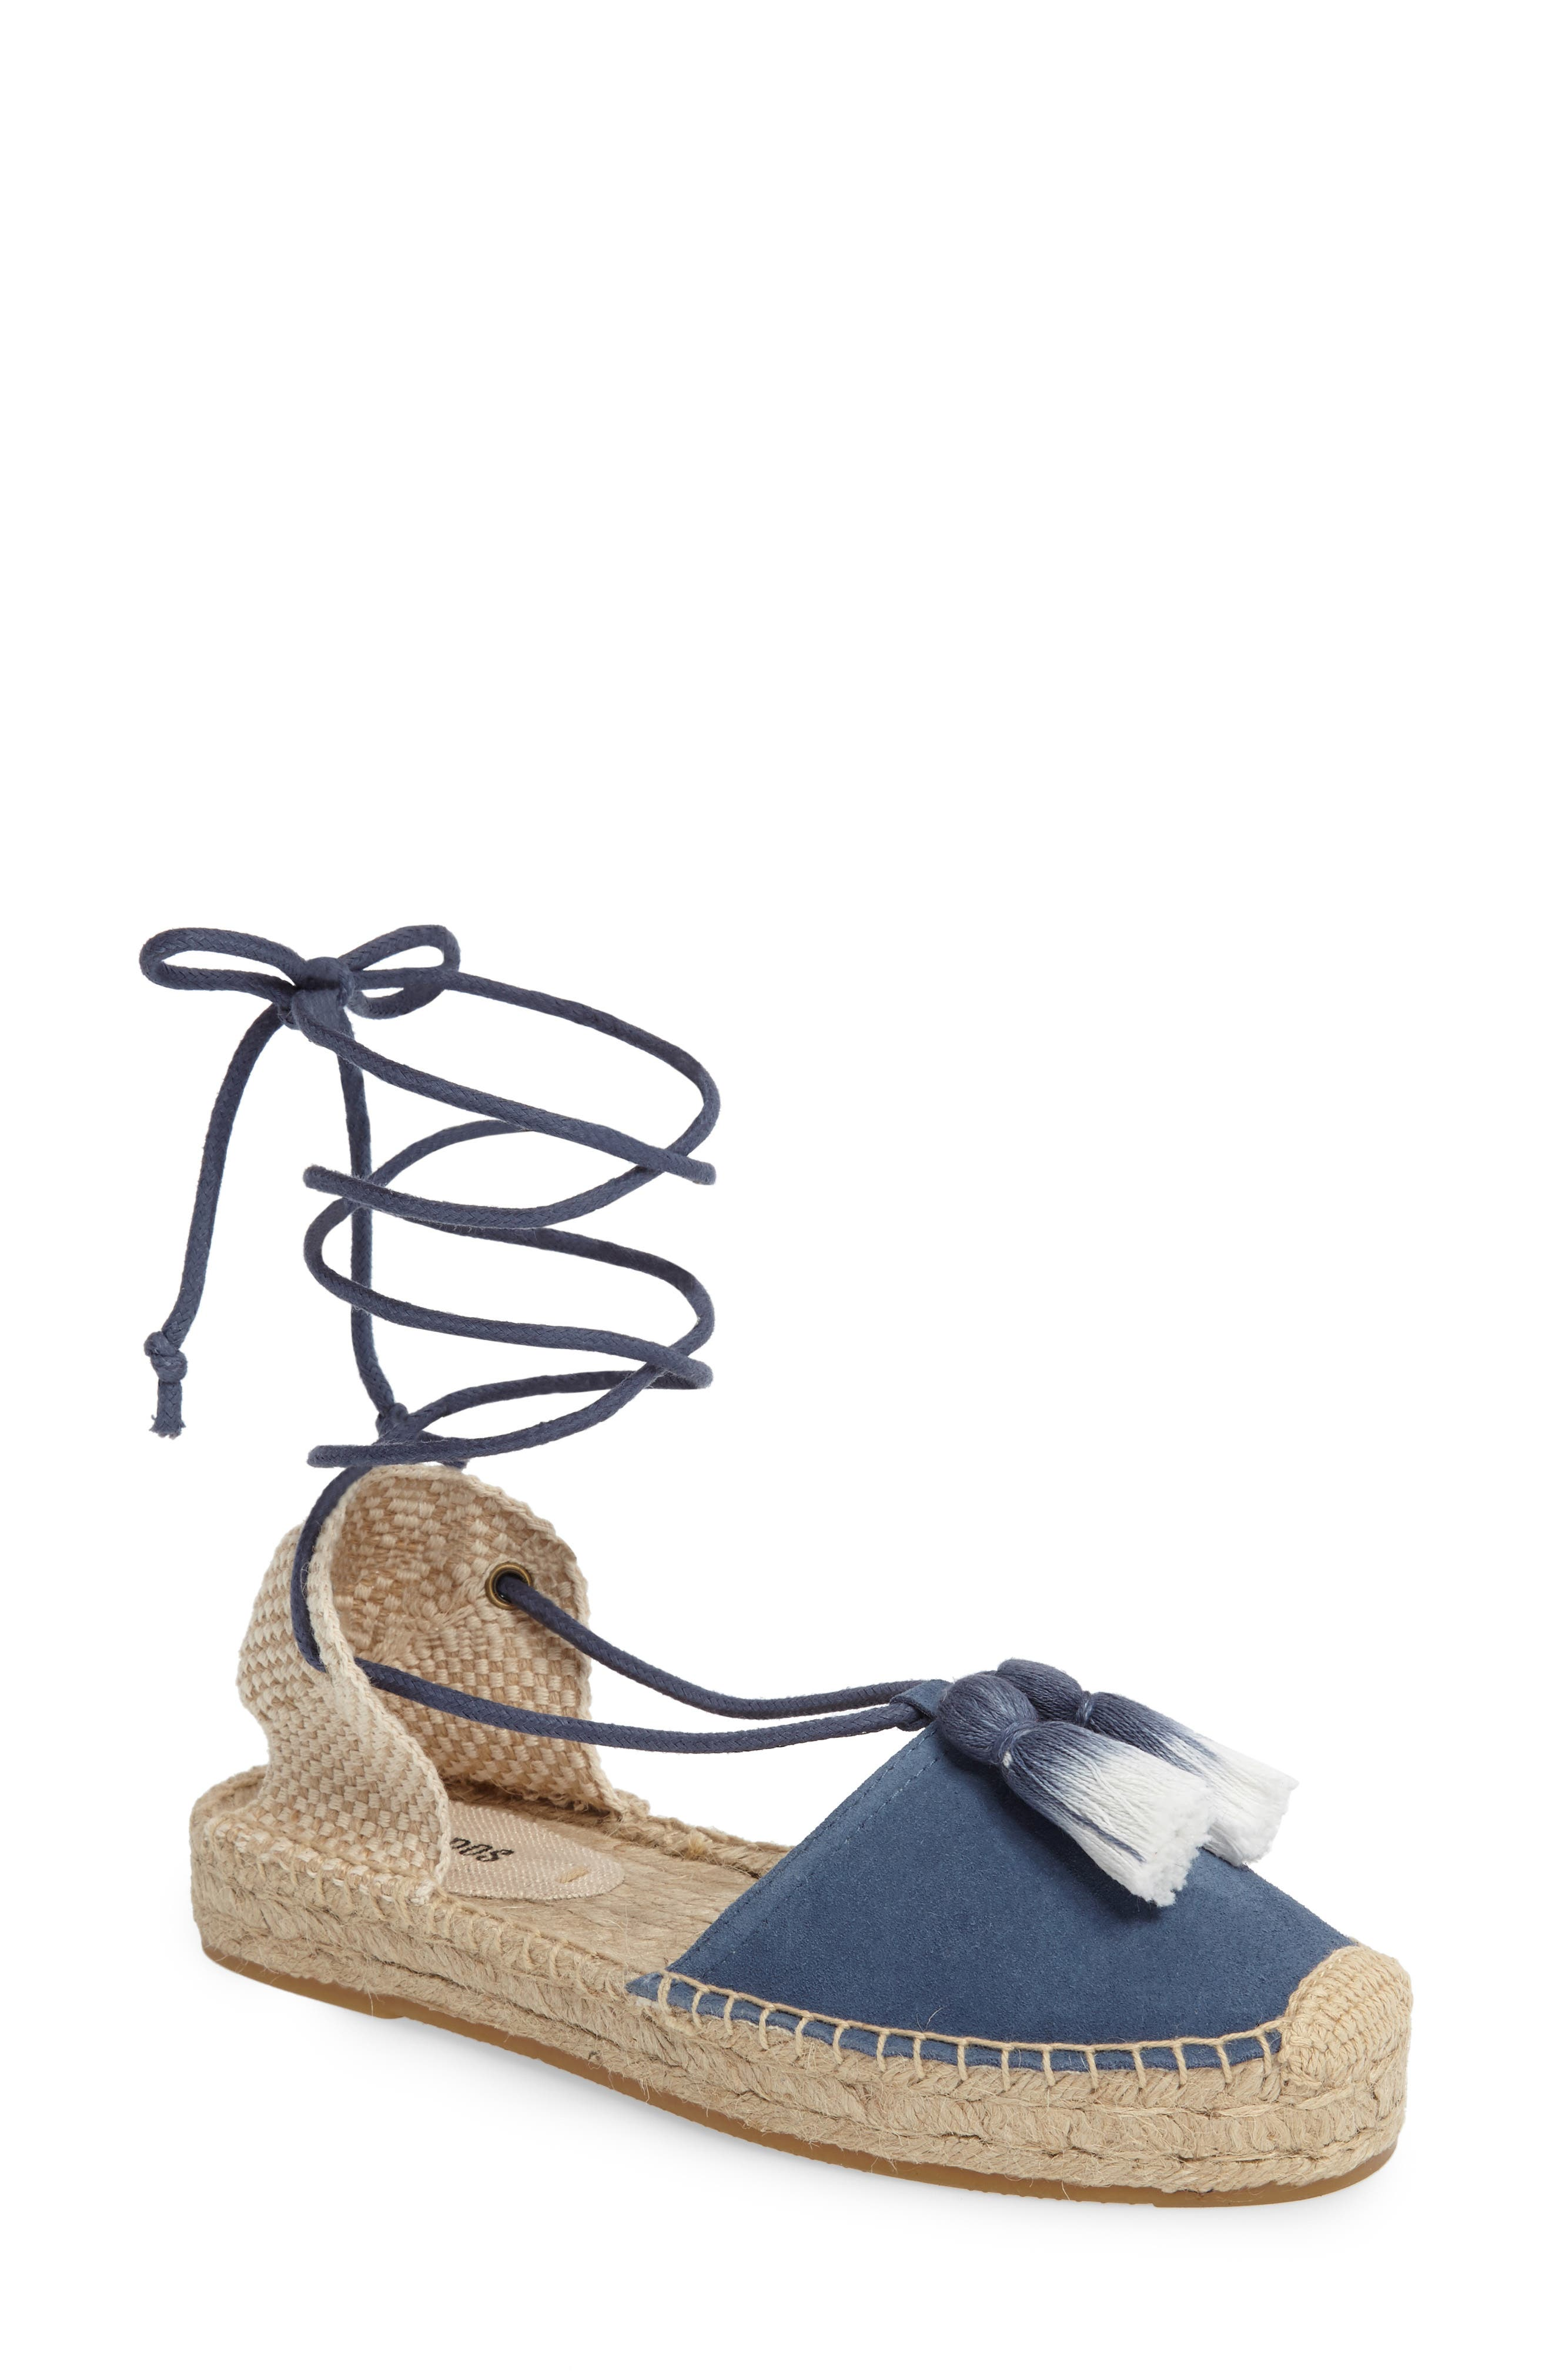 Main Image - Soludos Tassel Lace-Up Espadrille (Women)